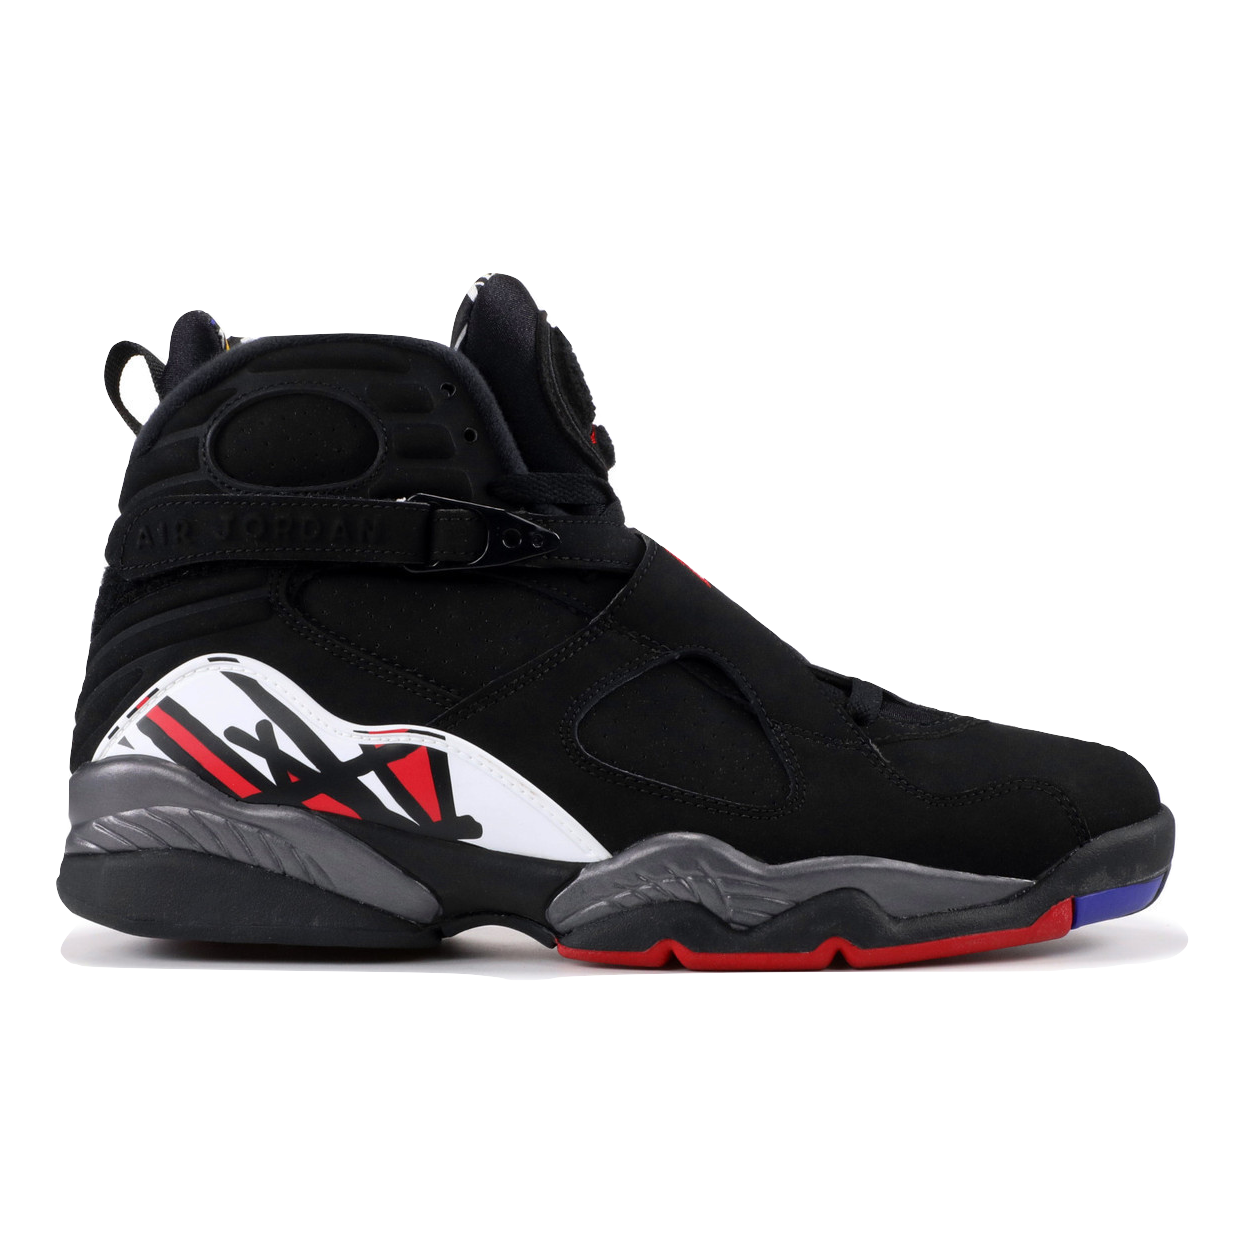 Air Jordan 8 Retro - Playoff (2013)